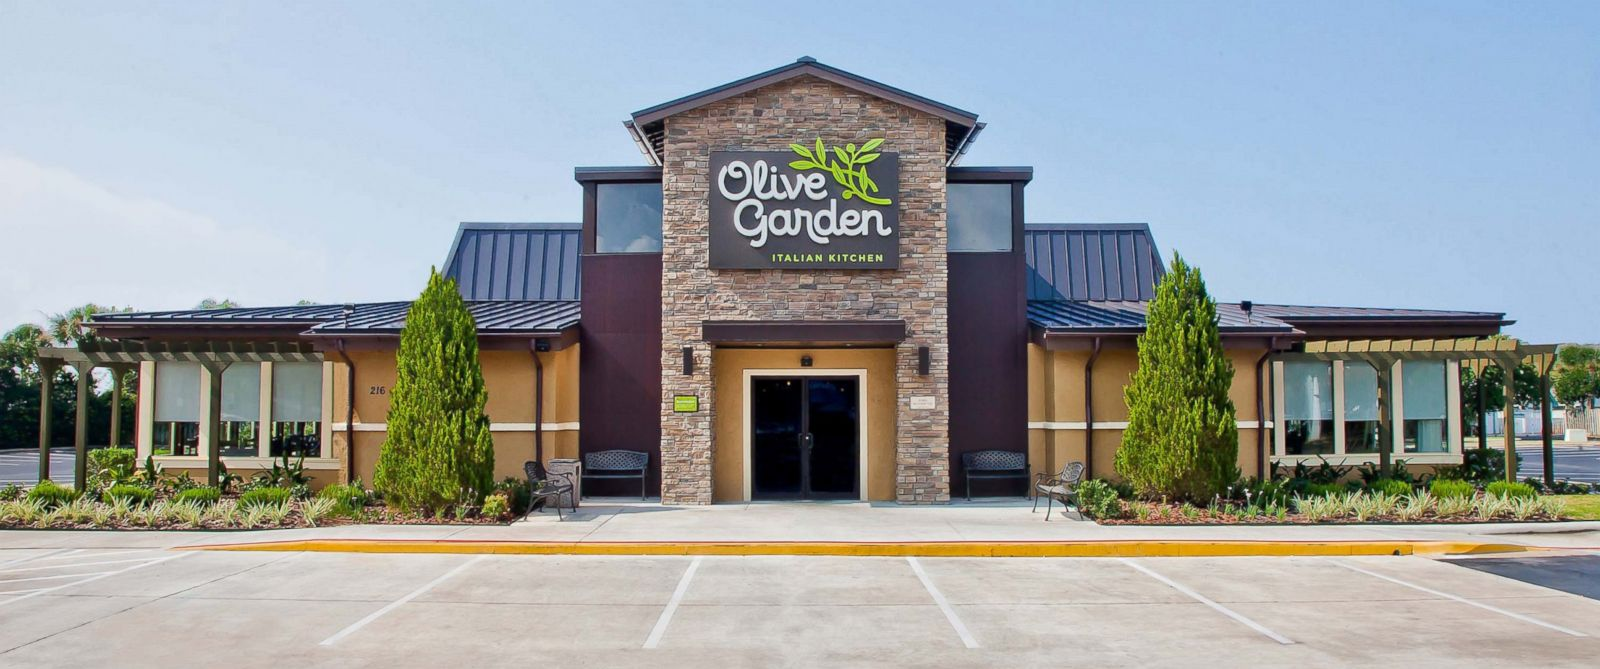 PHOTO: The Olive Garden restaurant is seen here in this undated file photo.